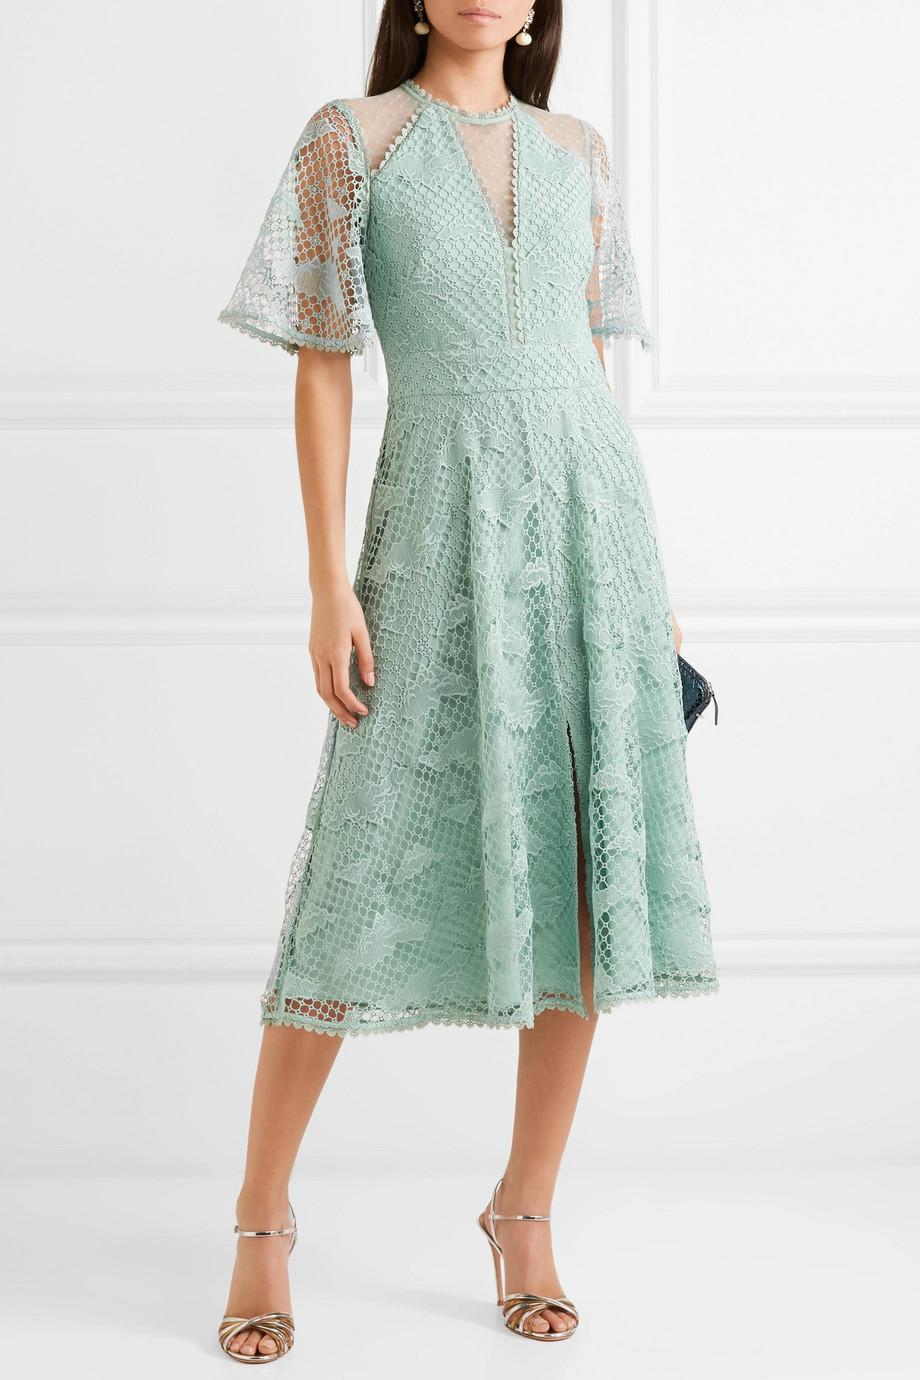 Haze Guipure Lace And Tulle Dress - Mint Temperley London TQAyIi1C4k